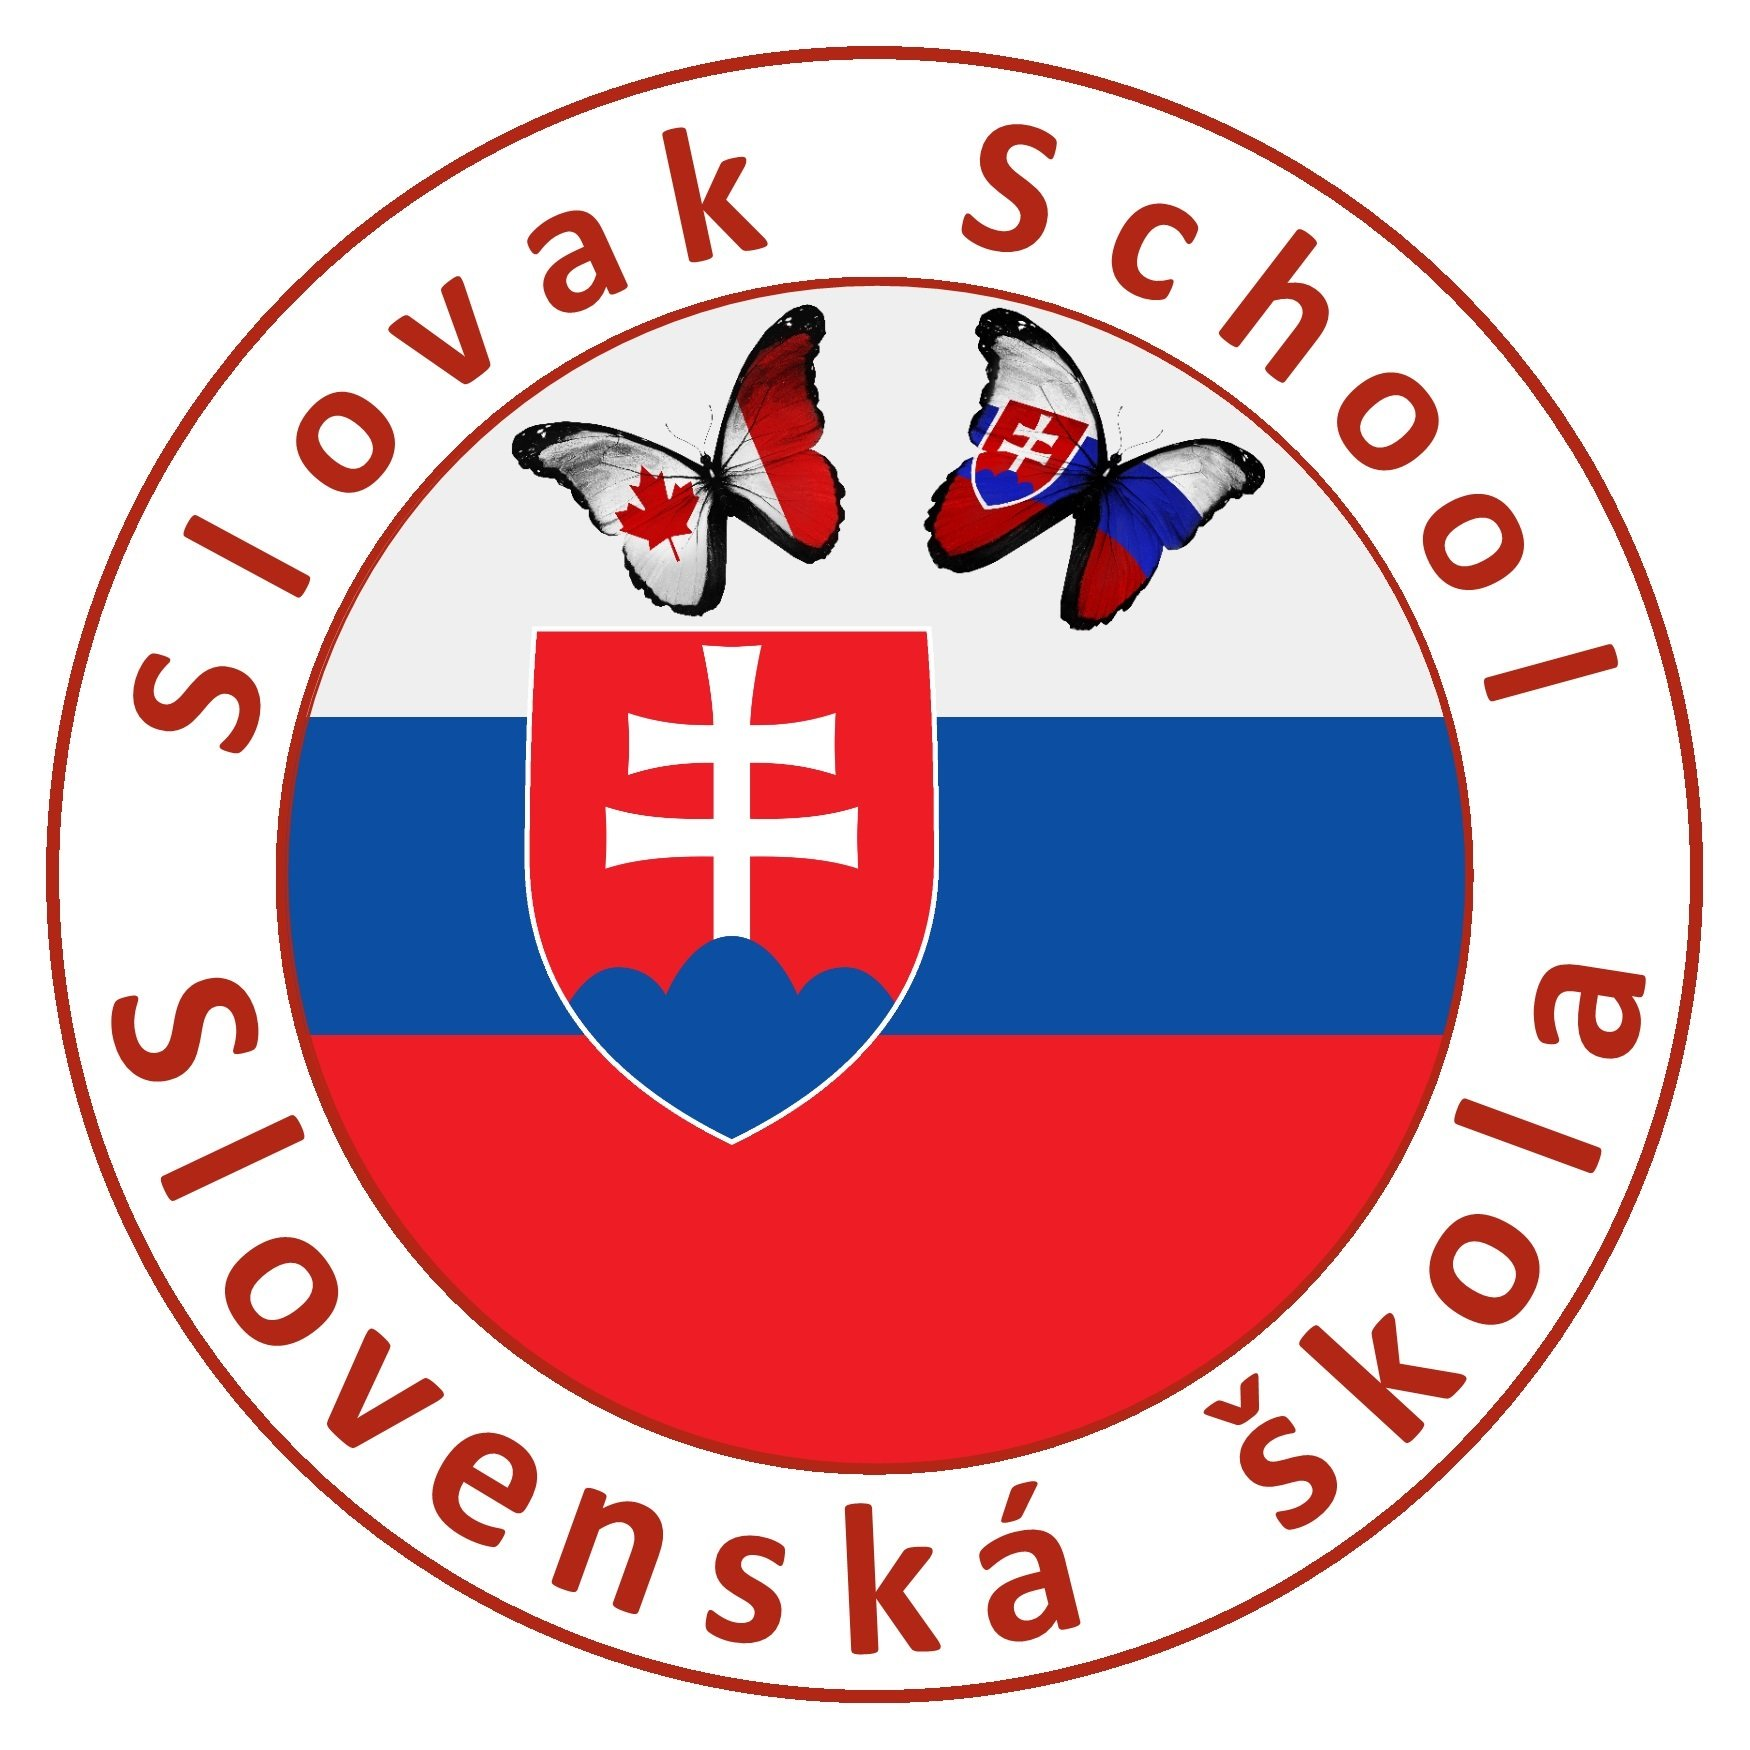 Slovak School